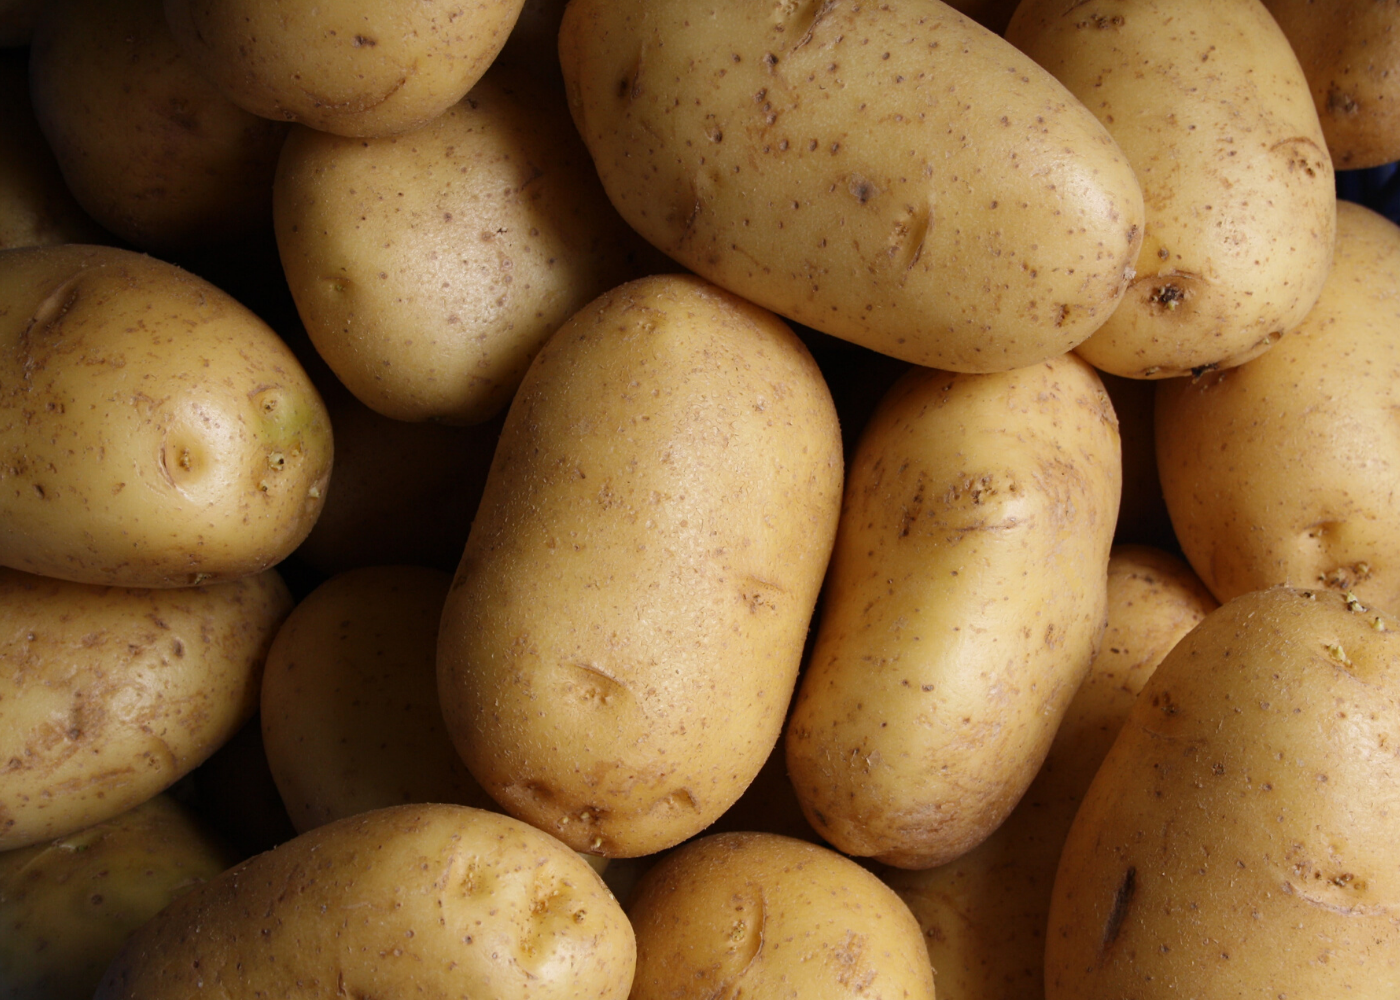 Potato | Natural ingredients you can find in the kitchen for amazing skin